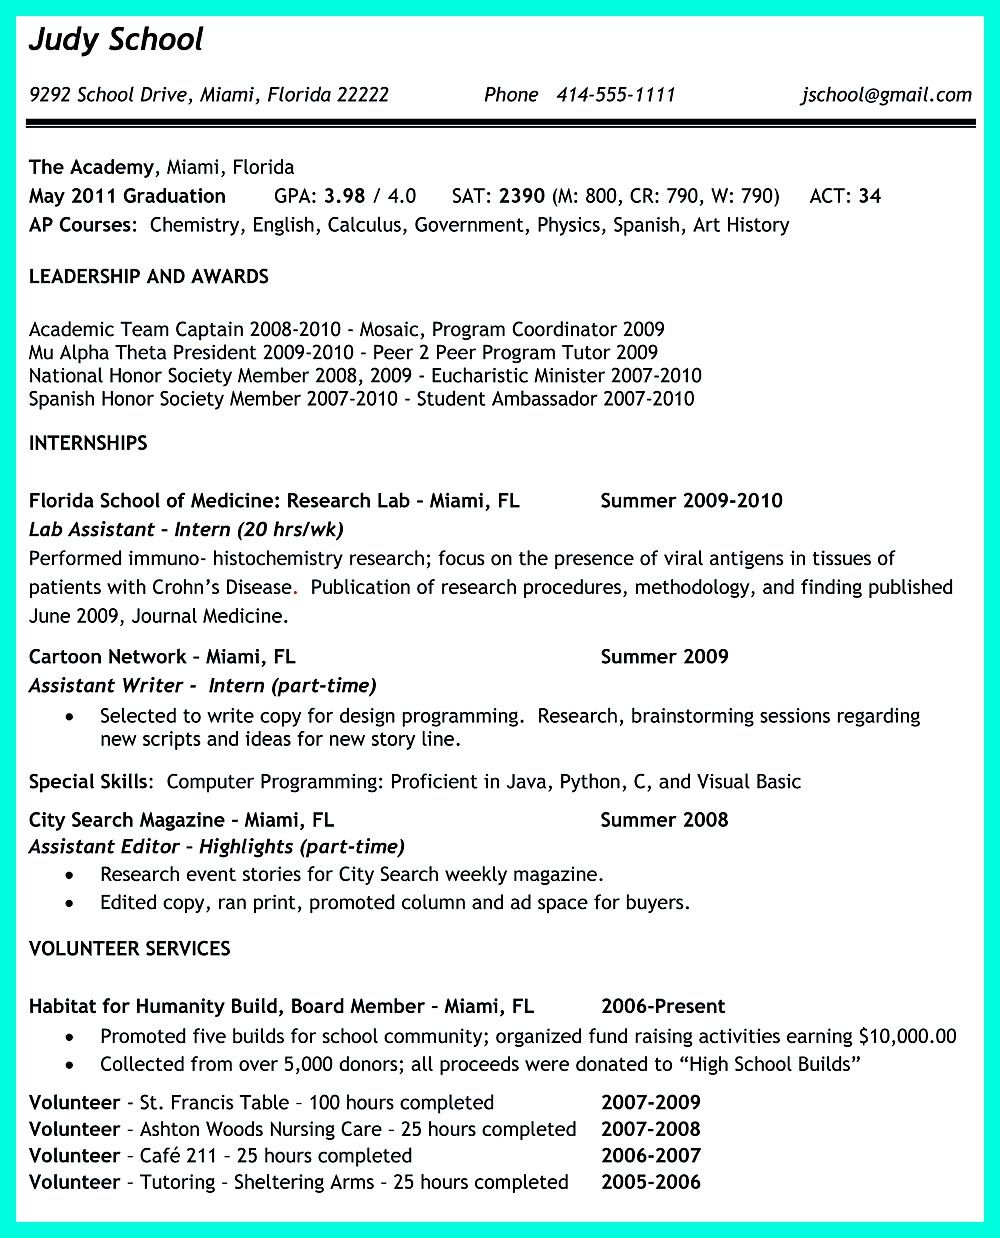 College Application Resume Is Very Advantageous When You Want To